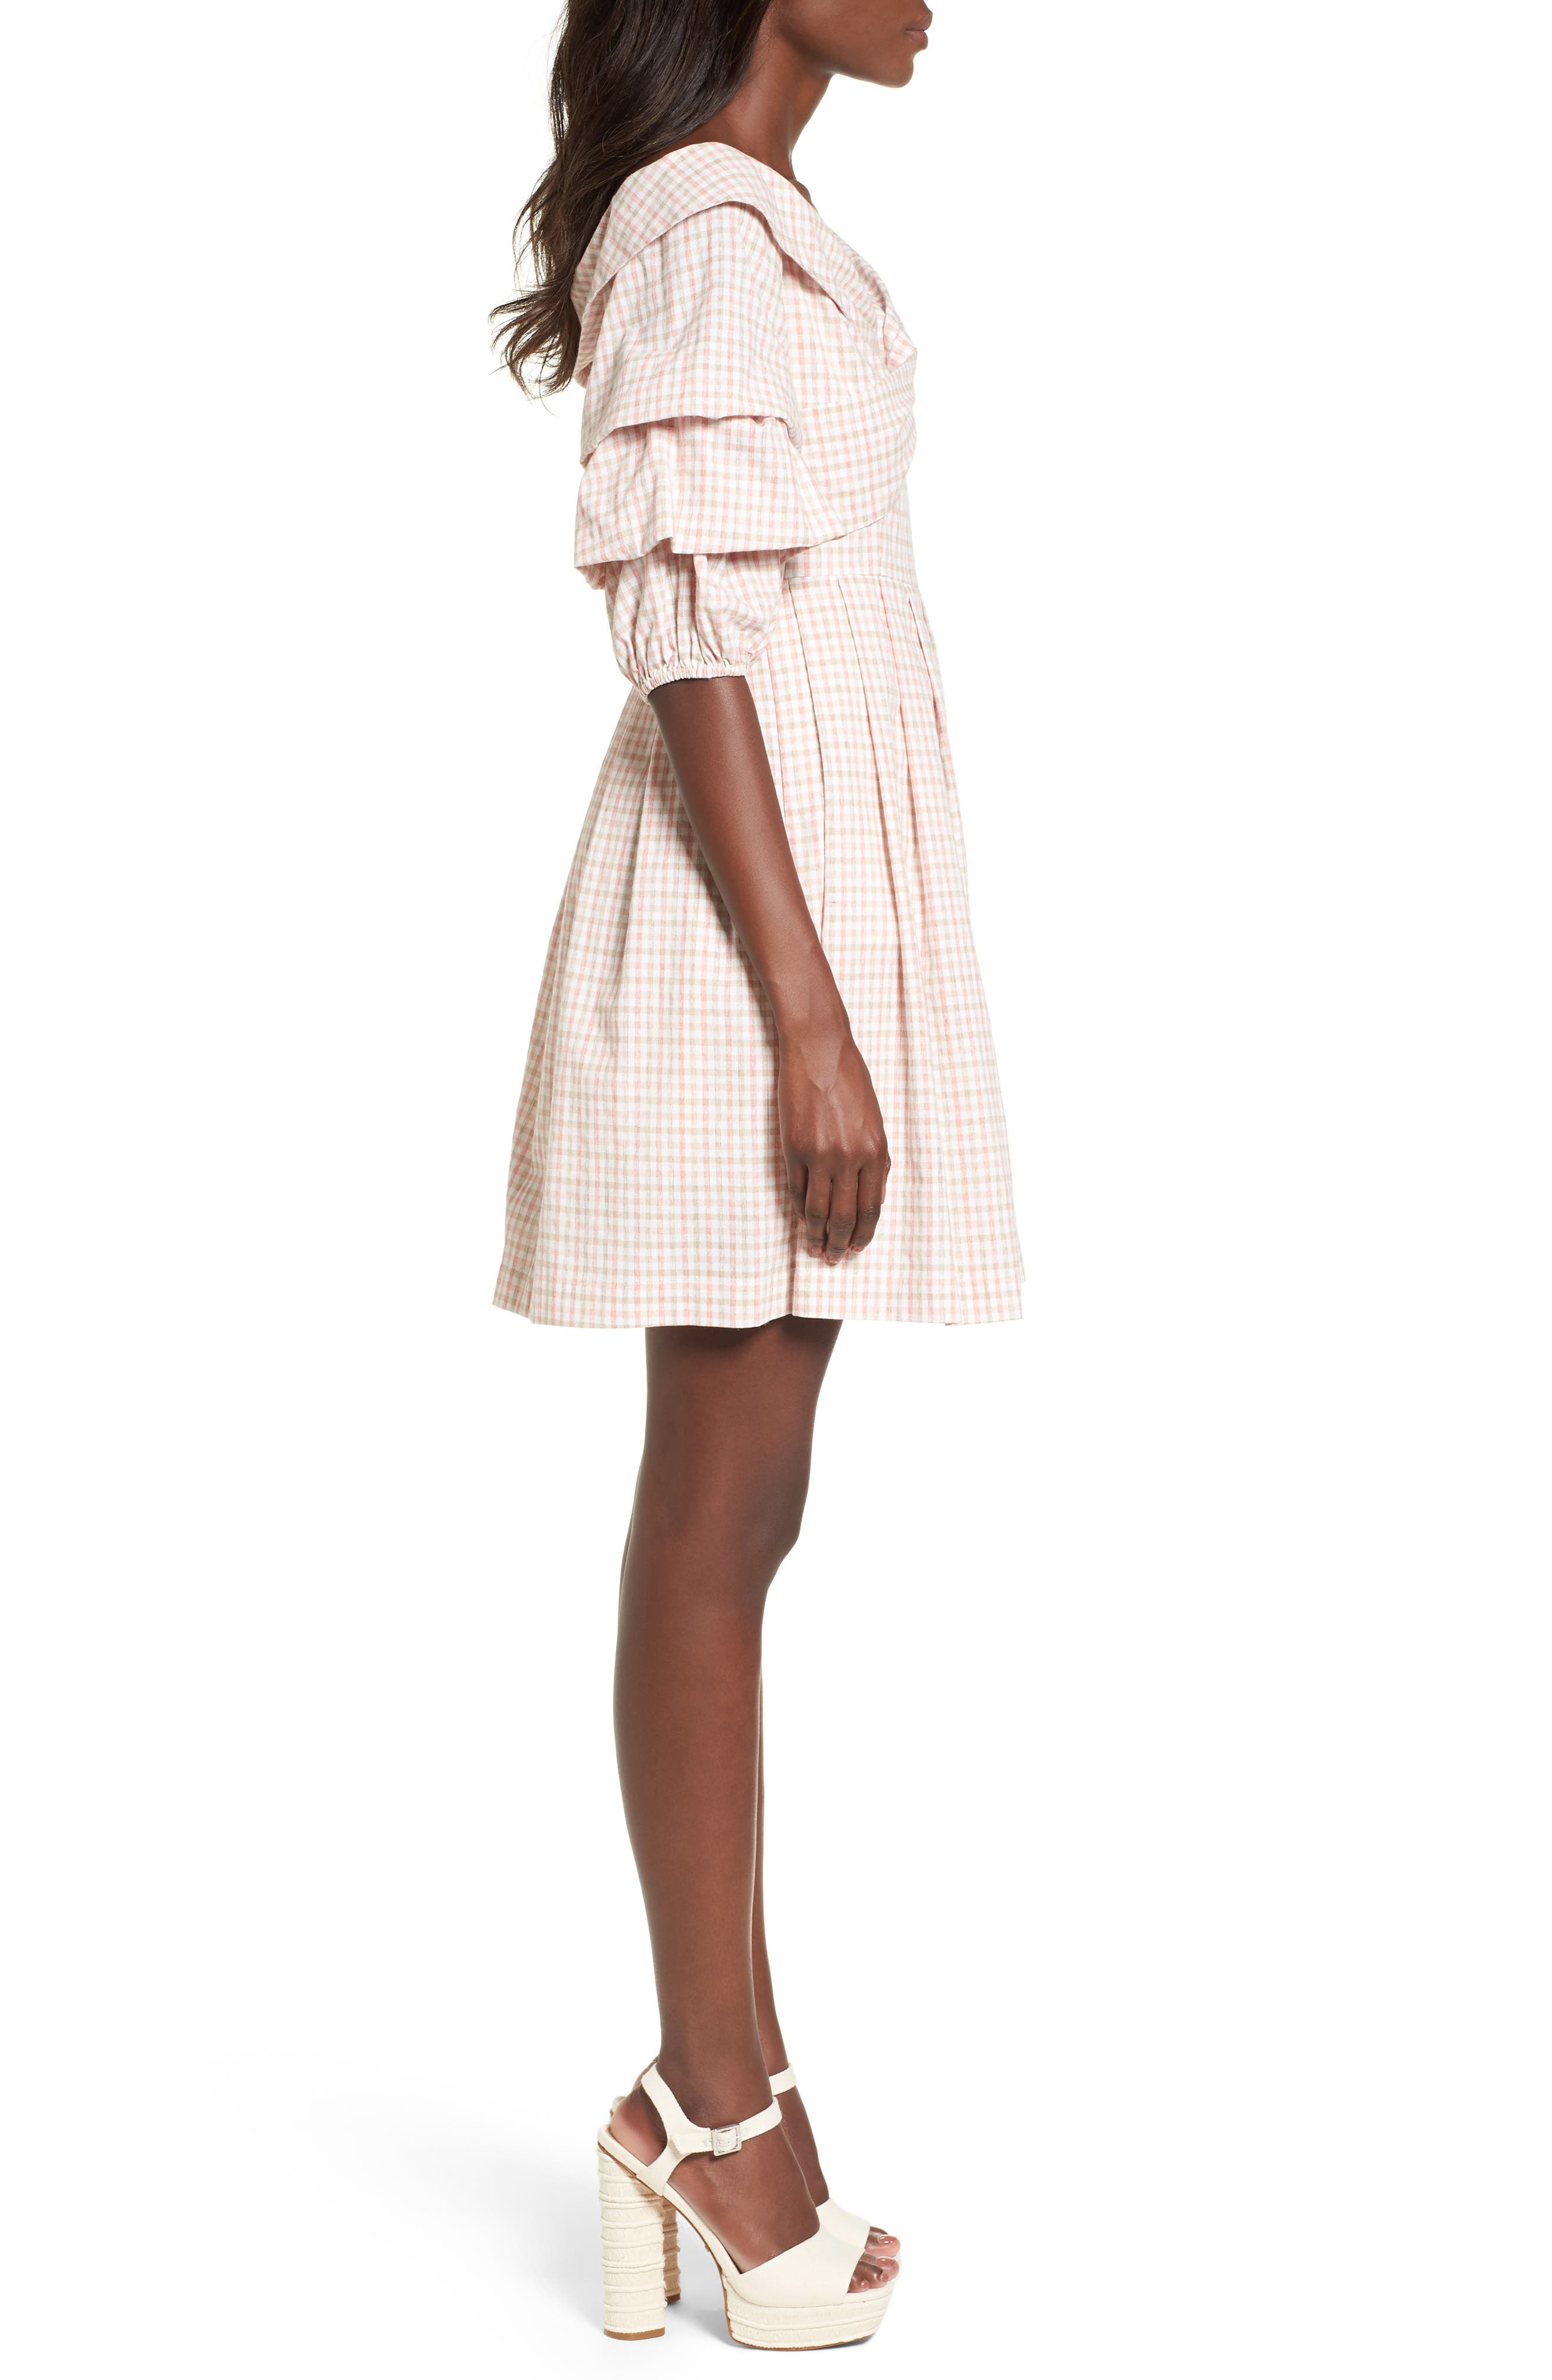 Chriselle x J.O.A. Tiered Sleeve Minidress,                             Alternate thumbnail 5, color,                             Patina Gingham